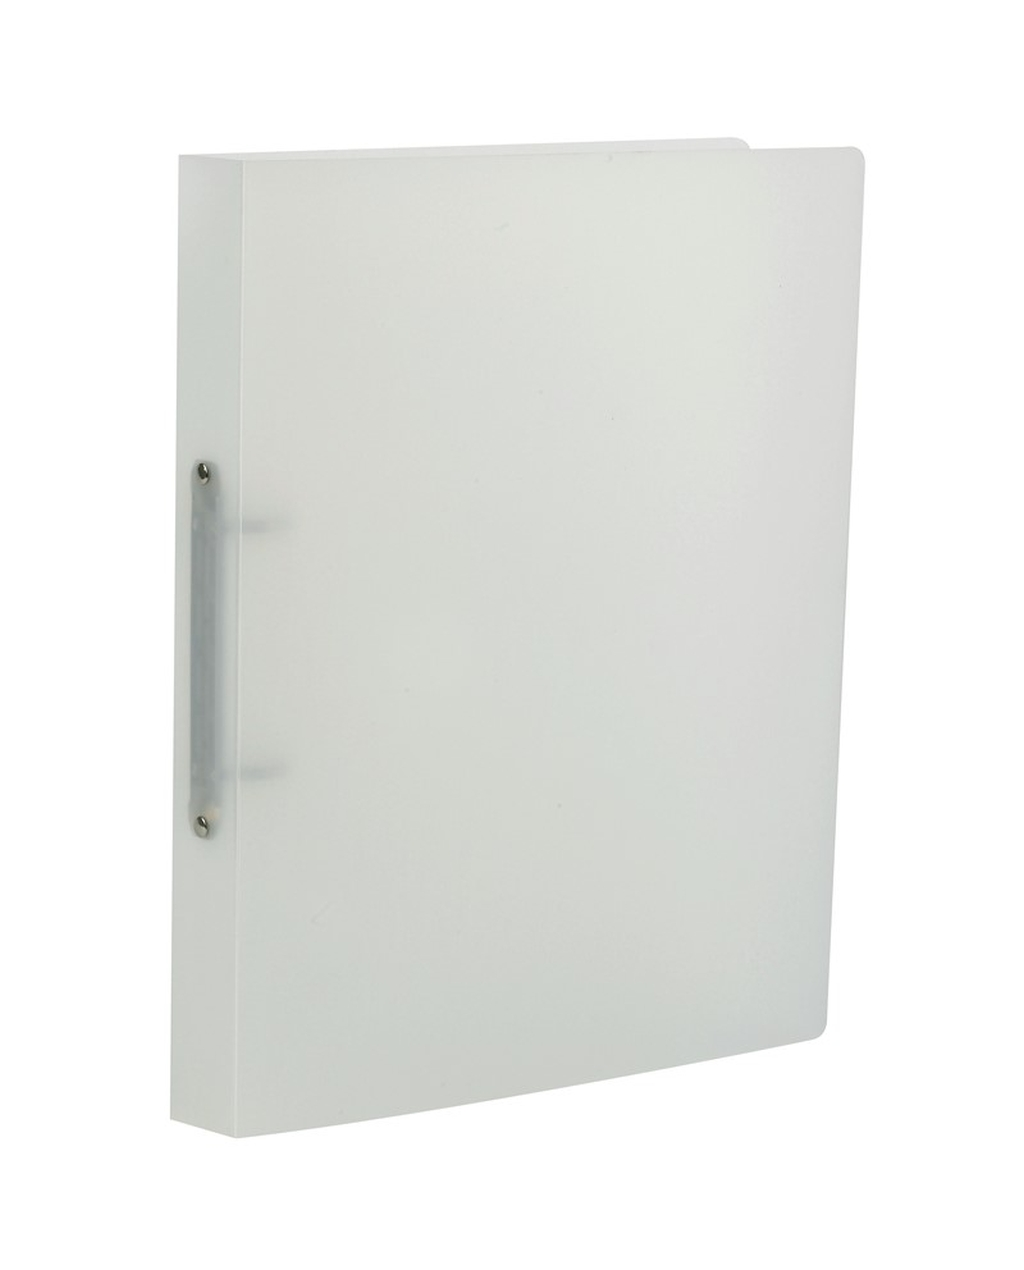 A4 2 Hole Frosted Polypropylene Ring Binder - Natural